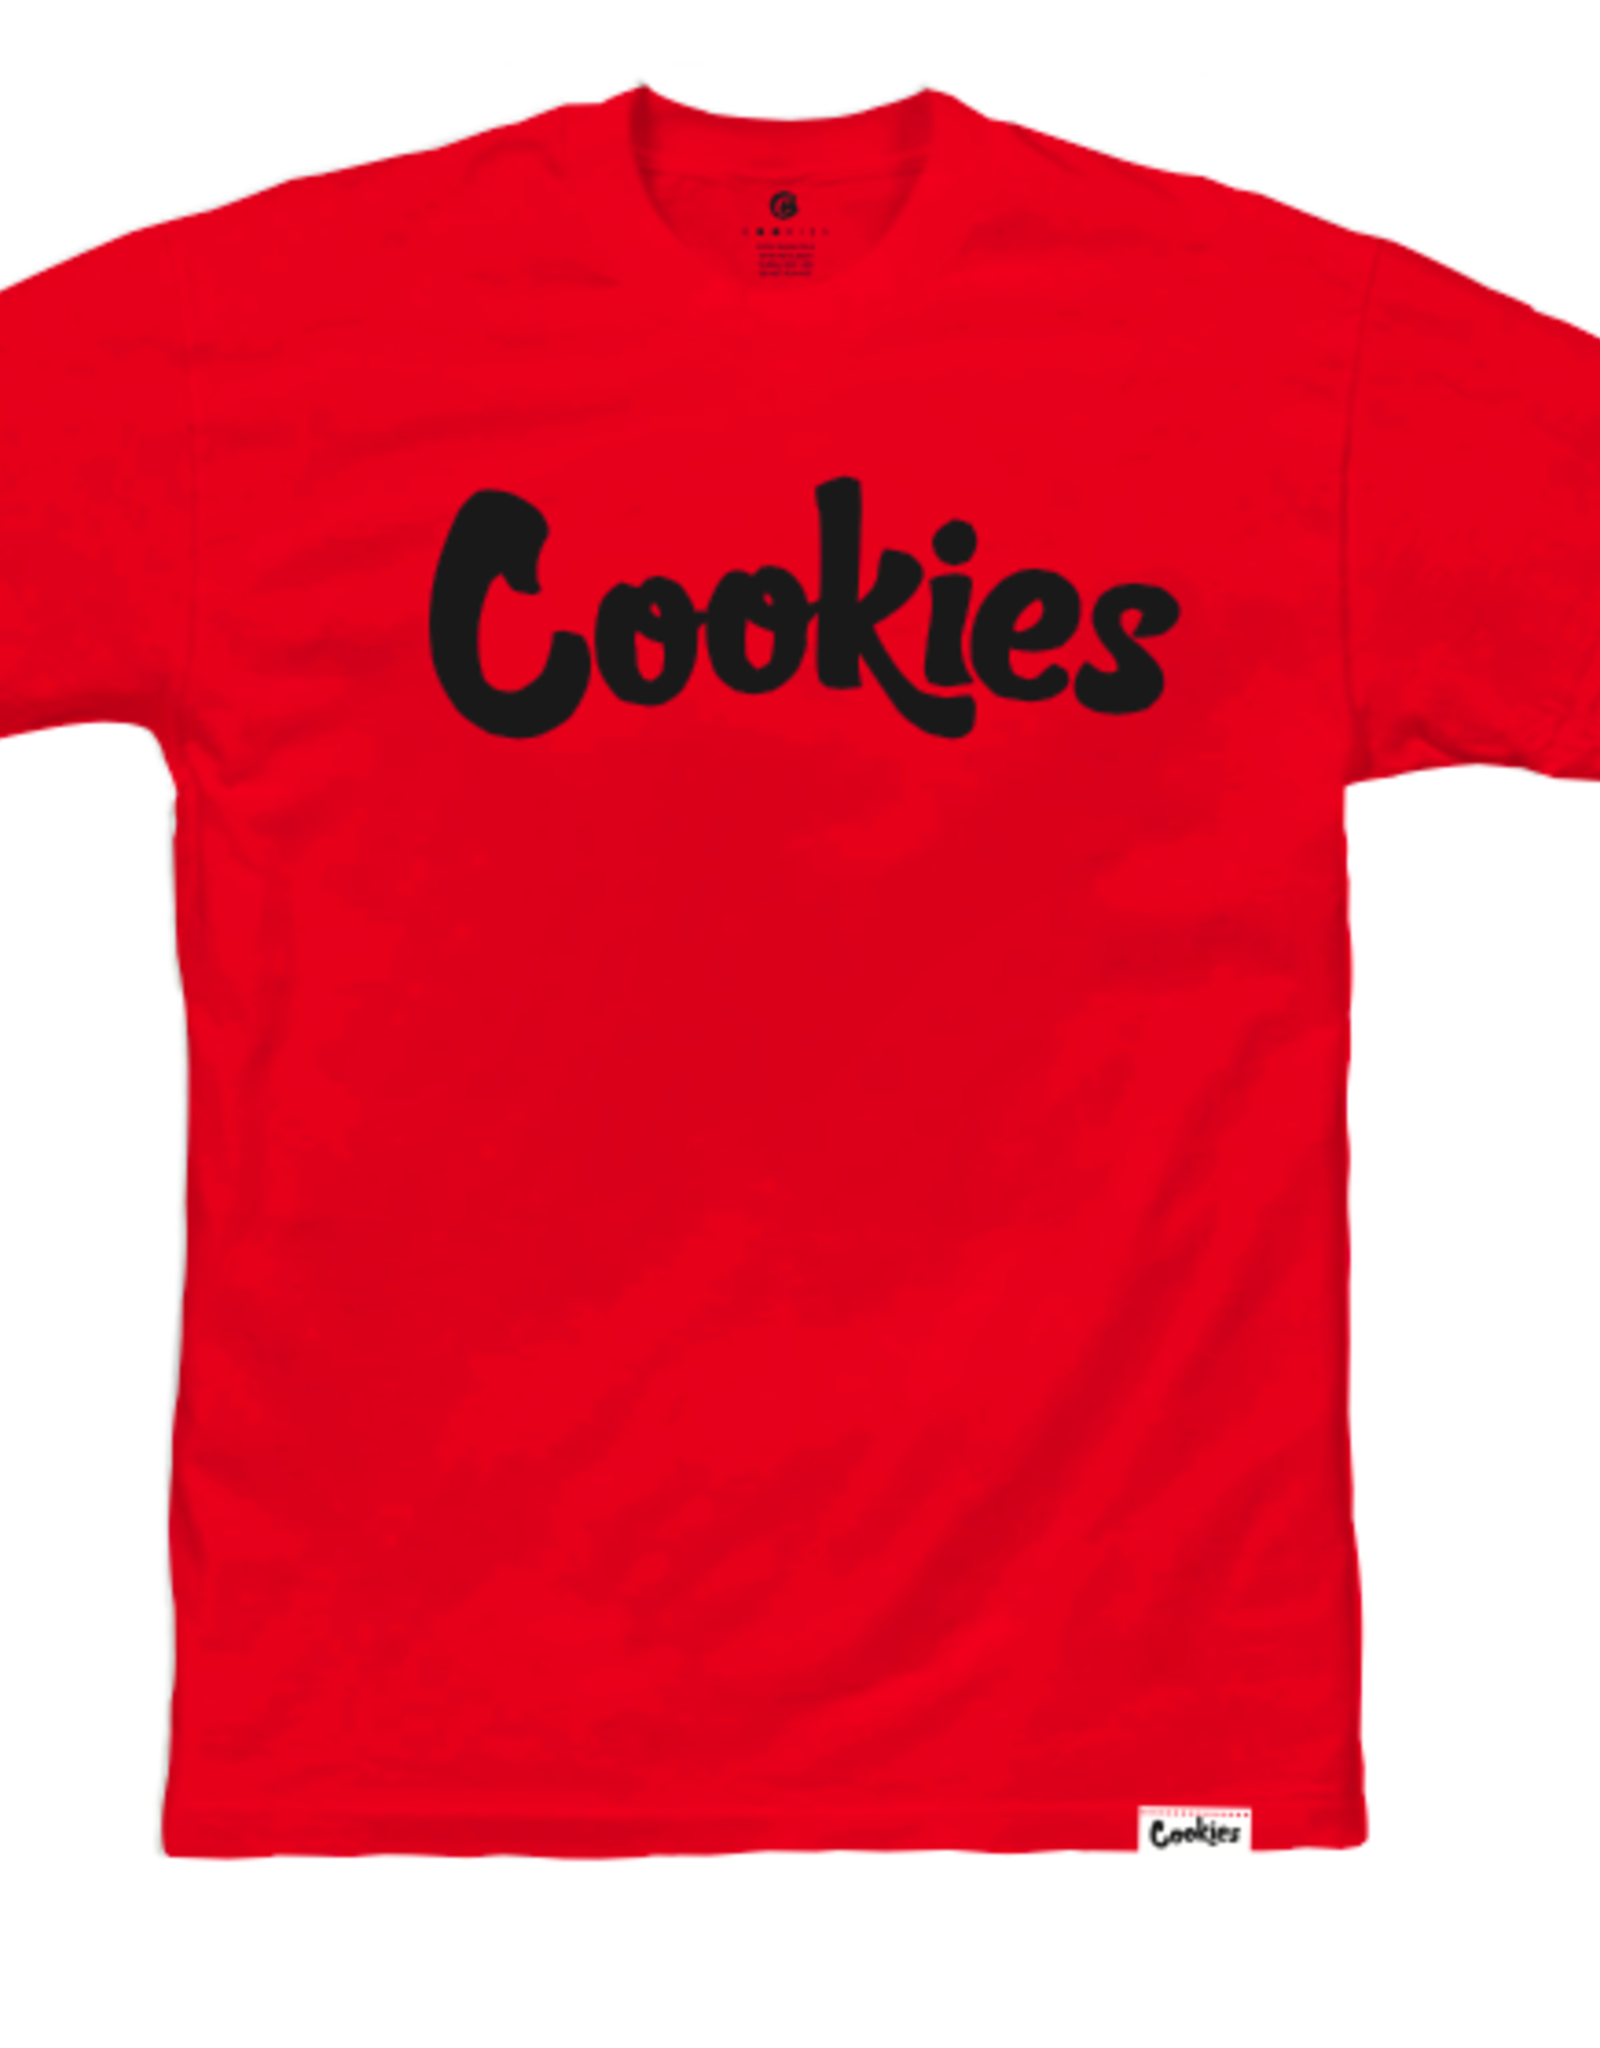 COOKIES Original MInt Tee